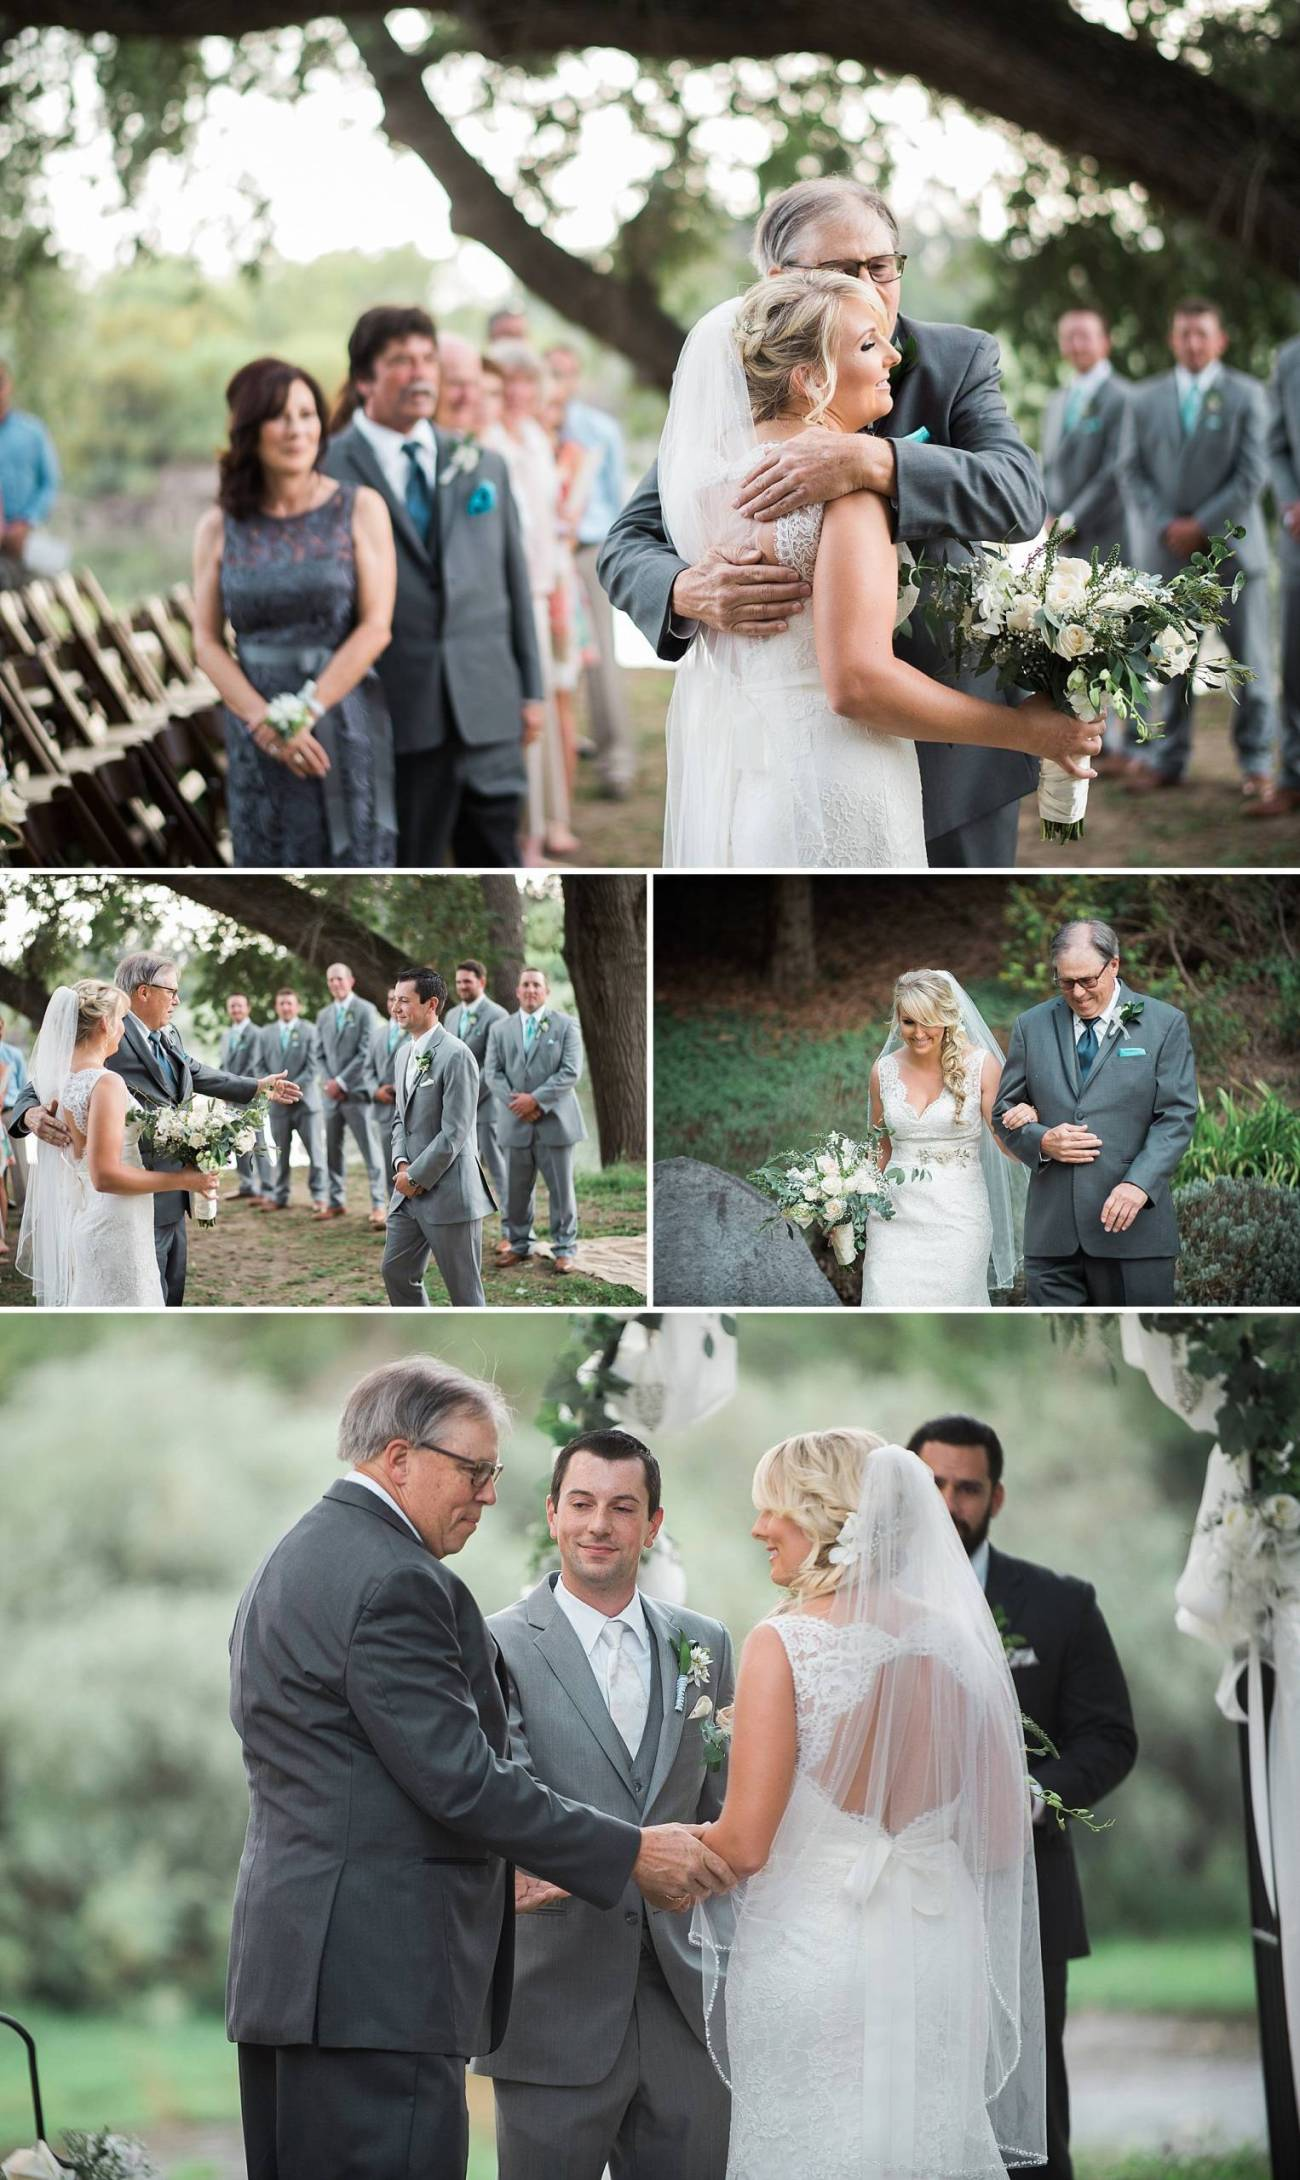 Erin + Marcel Third Element Photography & Cinema Fresno County Estate Wedding Hybrid Film Wedding Photographer_0029